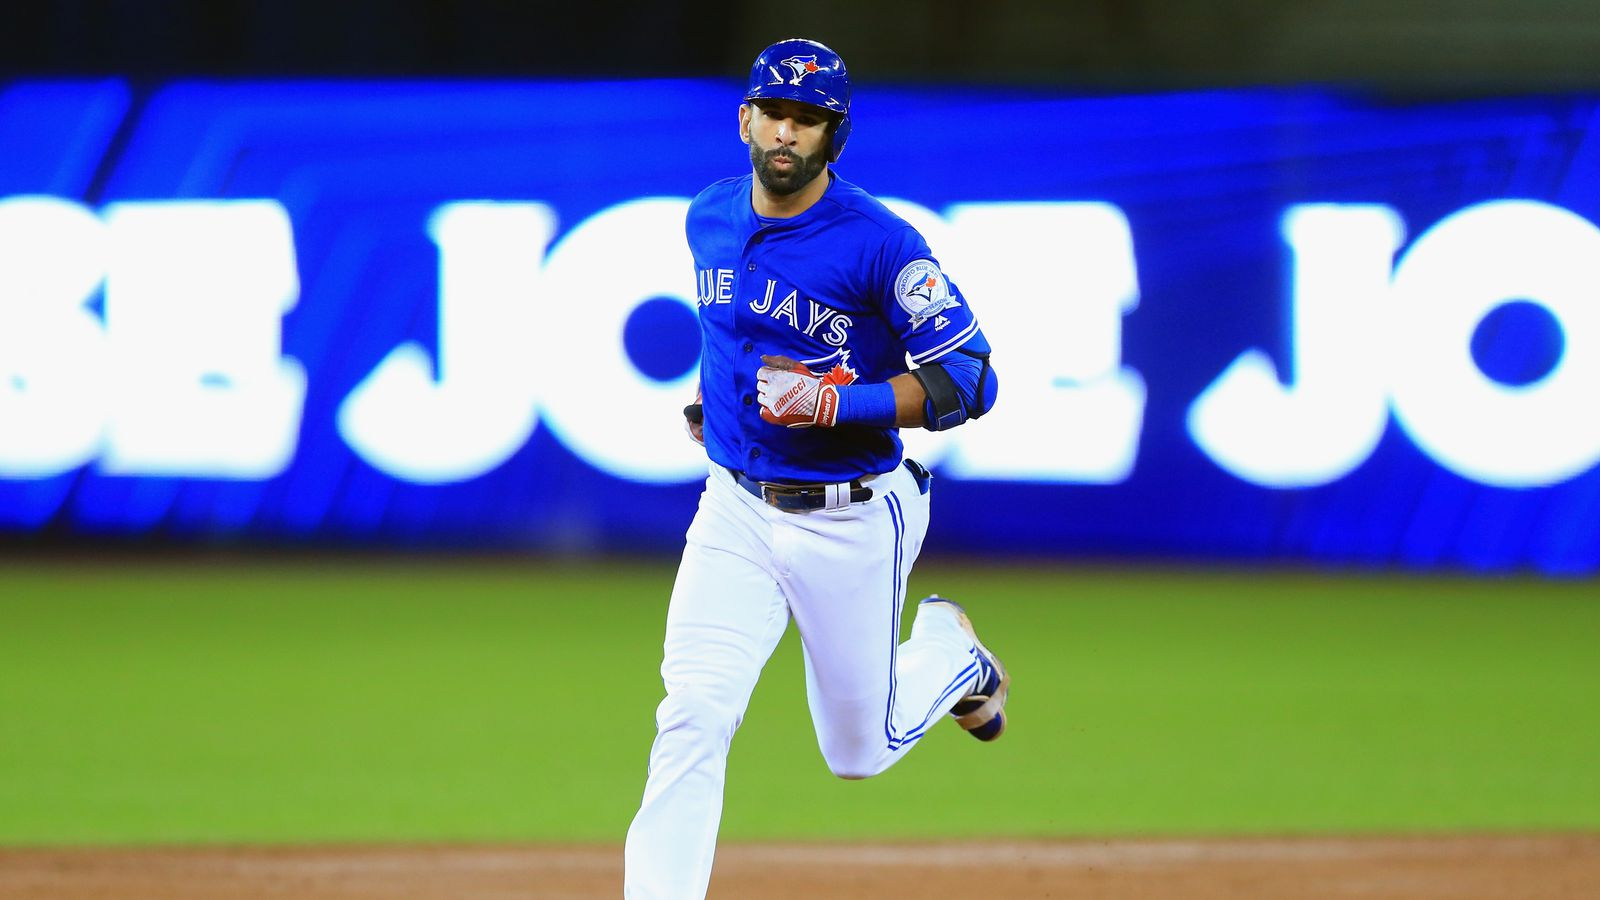 Jose Bautista signs one-year deal to return to Blue Jays